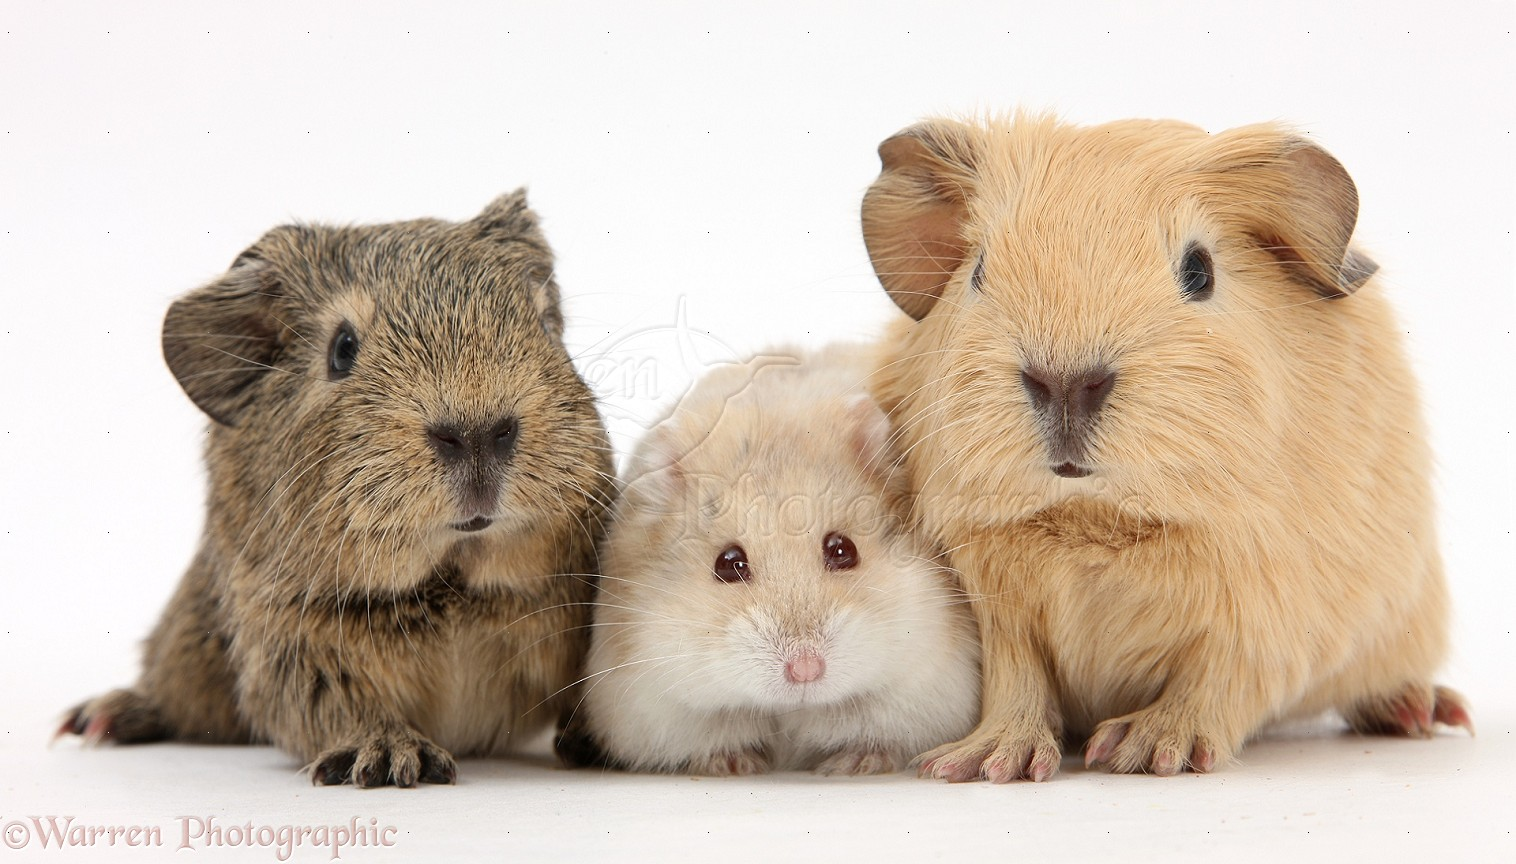 Uncategorized Hamsters And Guinea Pigs baby guinea pigs and russian hamster photo wp25391 puppy red pig